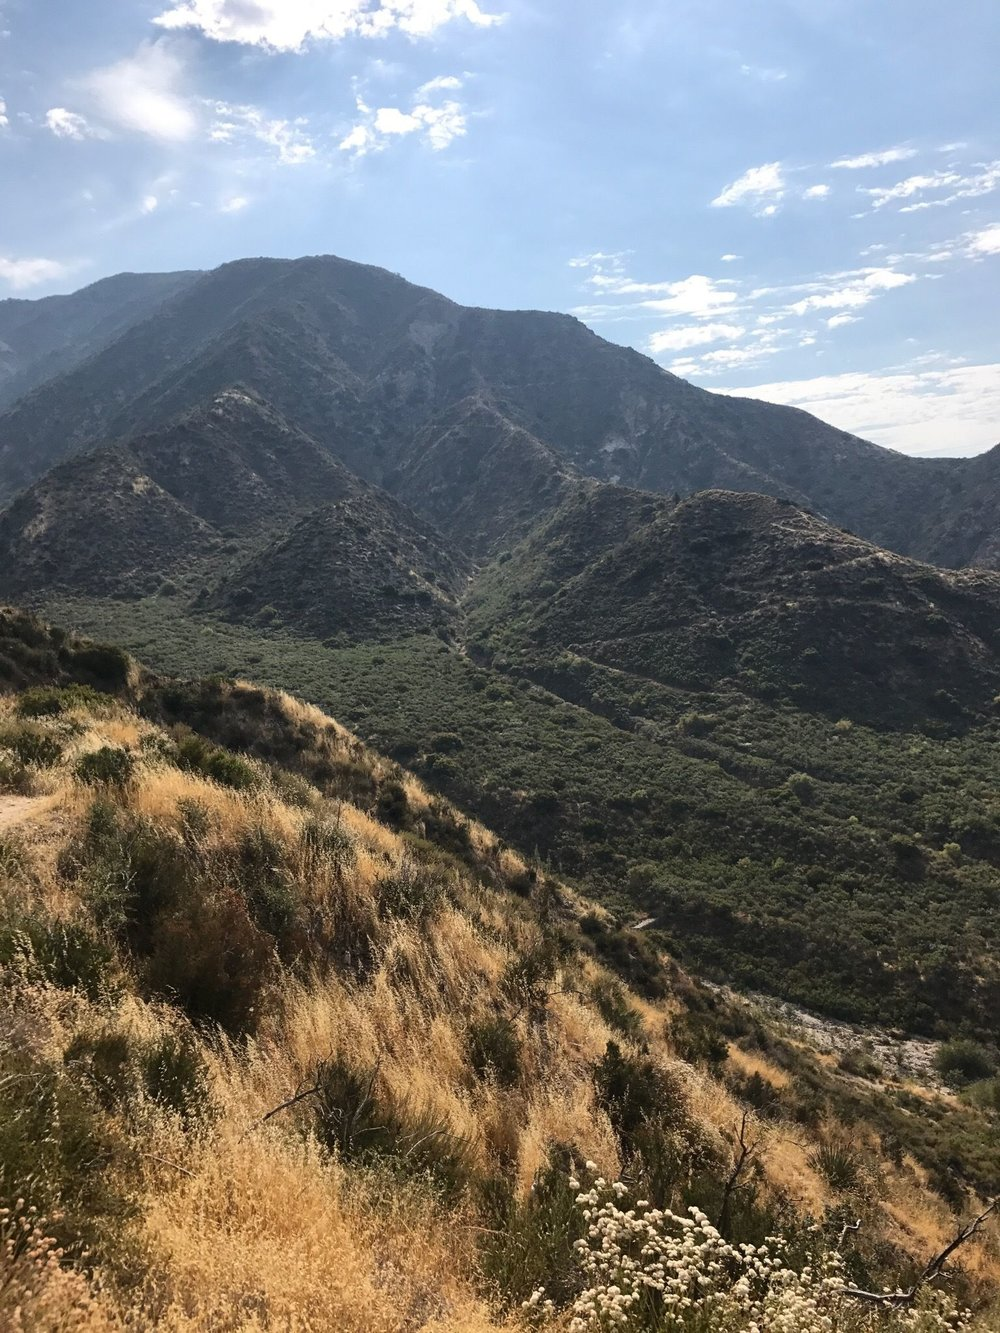 PEAK: Dunsmore Canyon - DIFFICULTY:3/5SCENERY: Plenty of rolling California mountains, complete with wildflowers, desert vibes, and streams.FUN FACT: Our trail is kept fresh and clean by the Glendale Parks and Open Space Foundation, whose mission is to provide plenty of parks and trails for the public to enjoy!